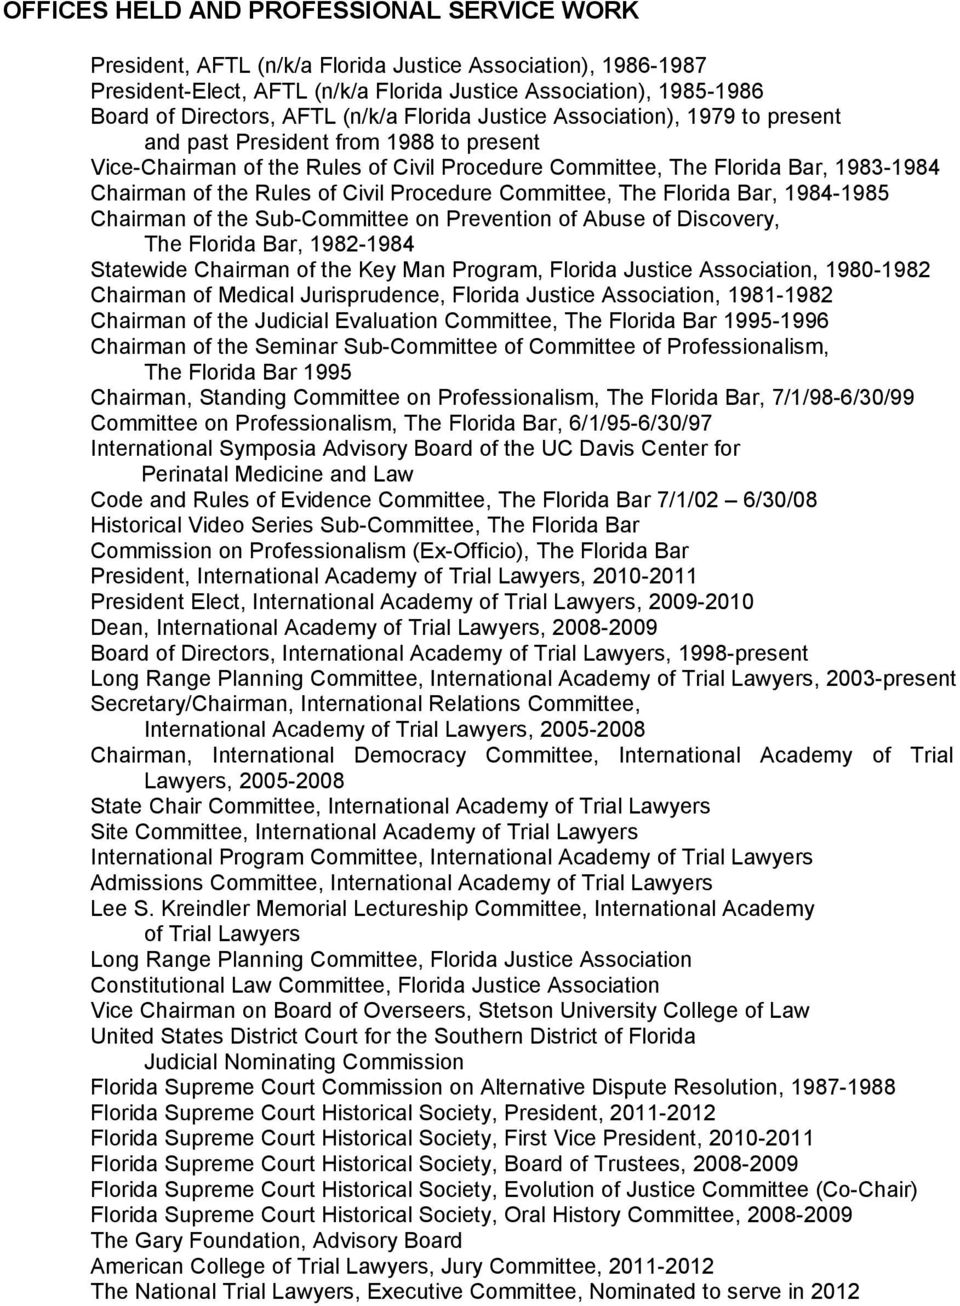 of Civil Procedure Committee, The Florida Bar, 1984-1985 Chairman of the Sub-Committee on Prevention of Abuse of Discovery, The Florida Bar, 1982-1984 Statewide Chairman of the Key Man Program,